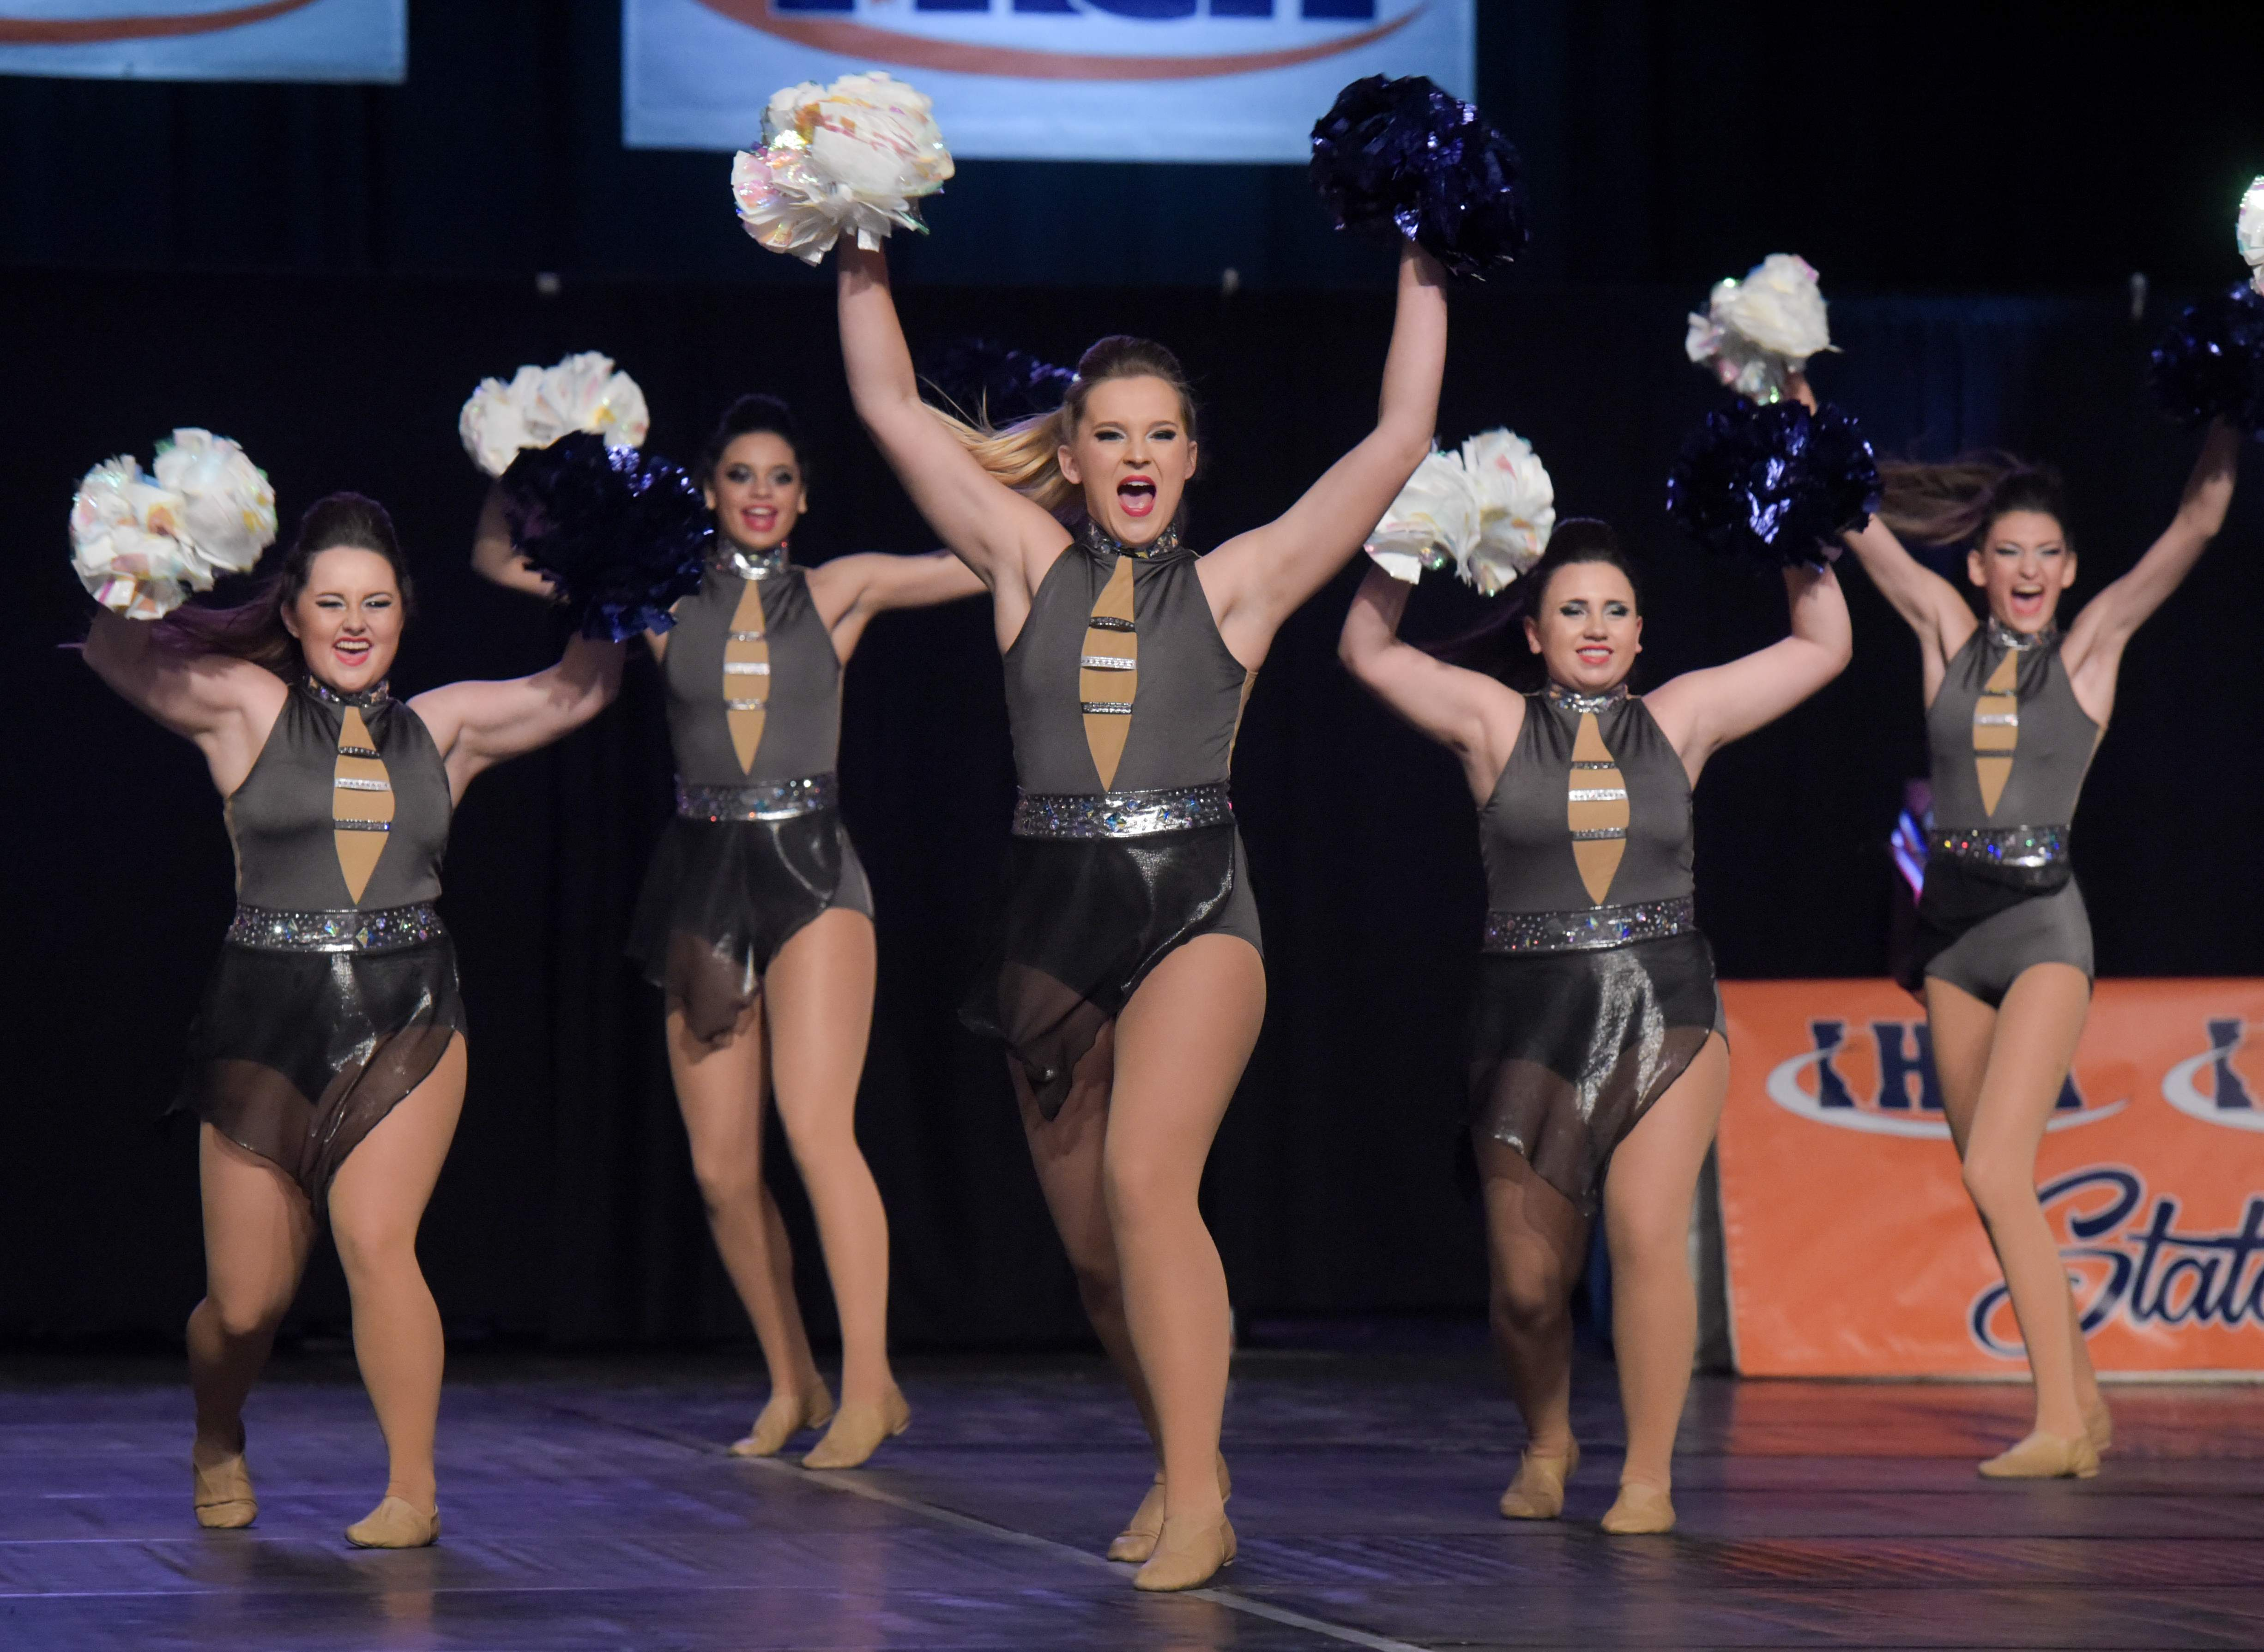 The Murphysboro High School competitive dance team does their routine inside the Grossinger Motors Arena in Bloomington.